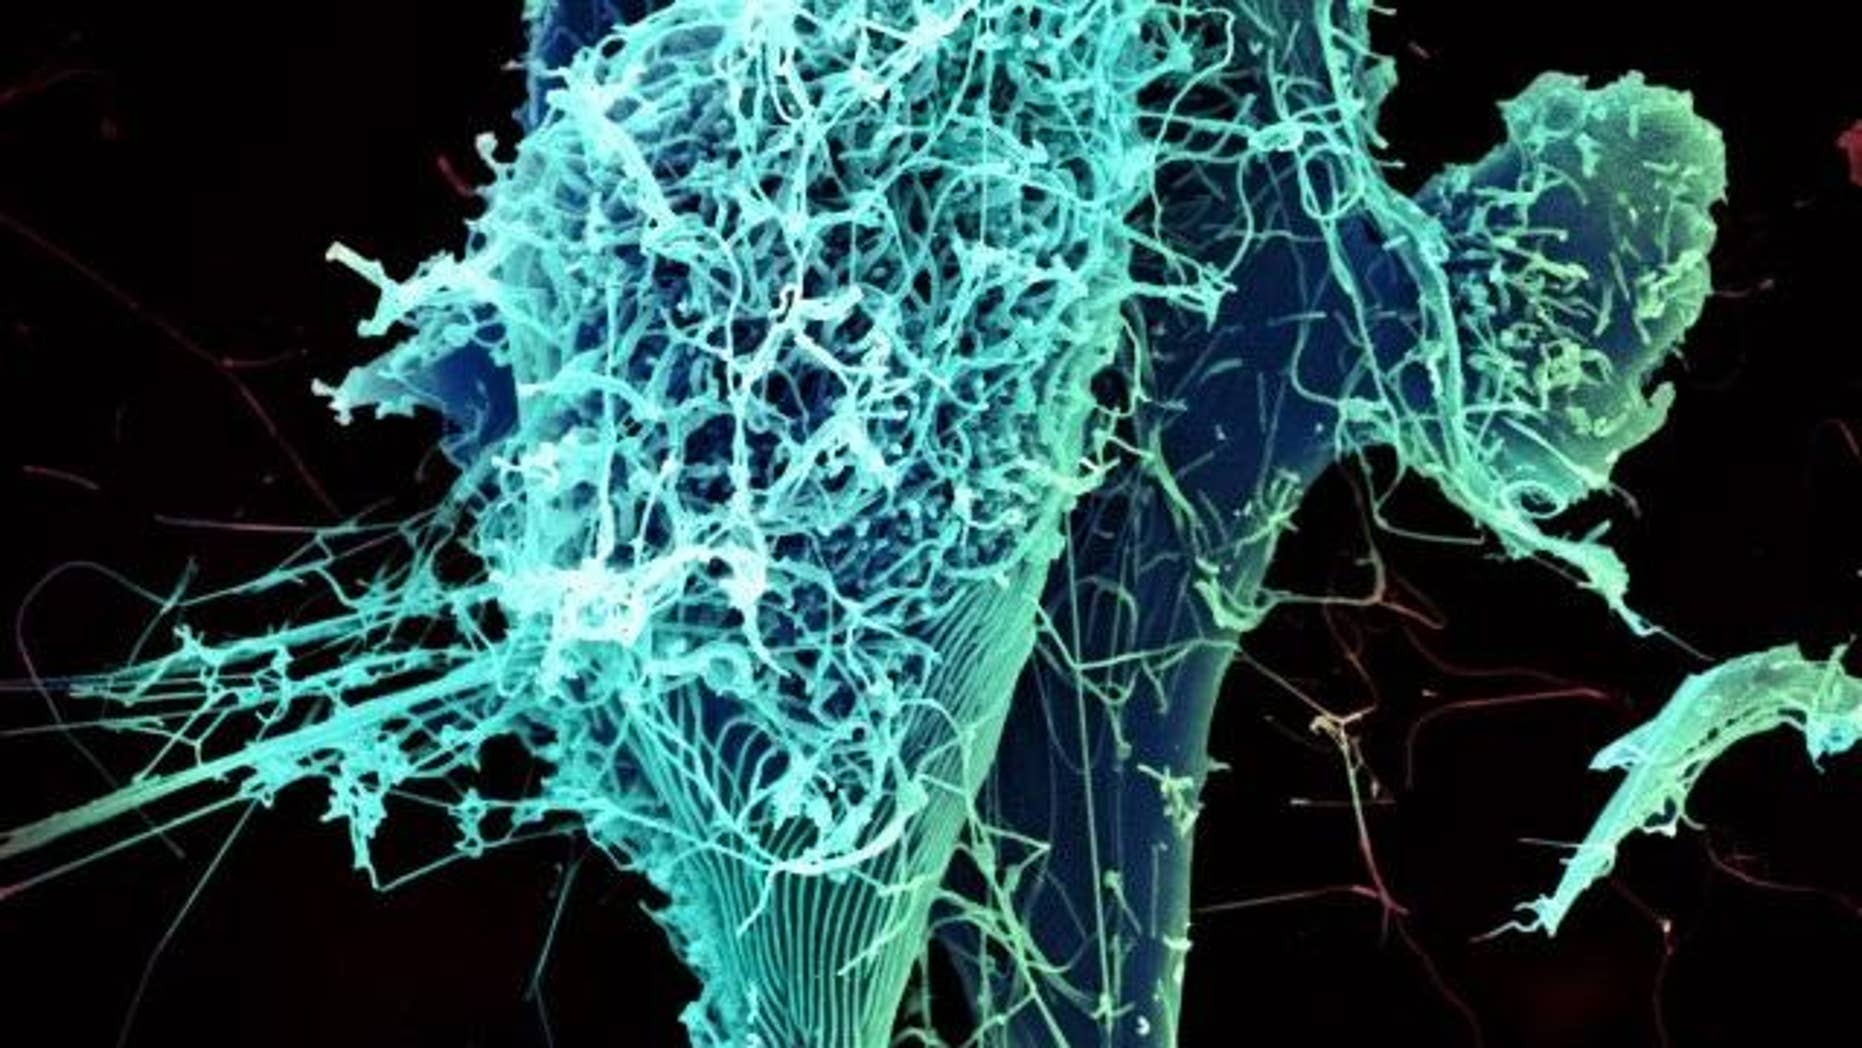 String-like Ebola virus particles are shedding from an infected cell in this electron micrograph.